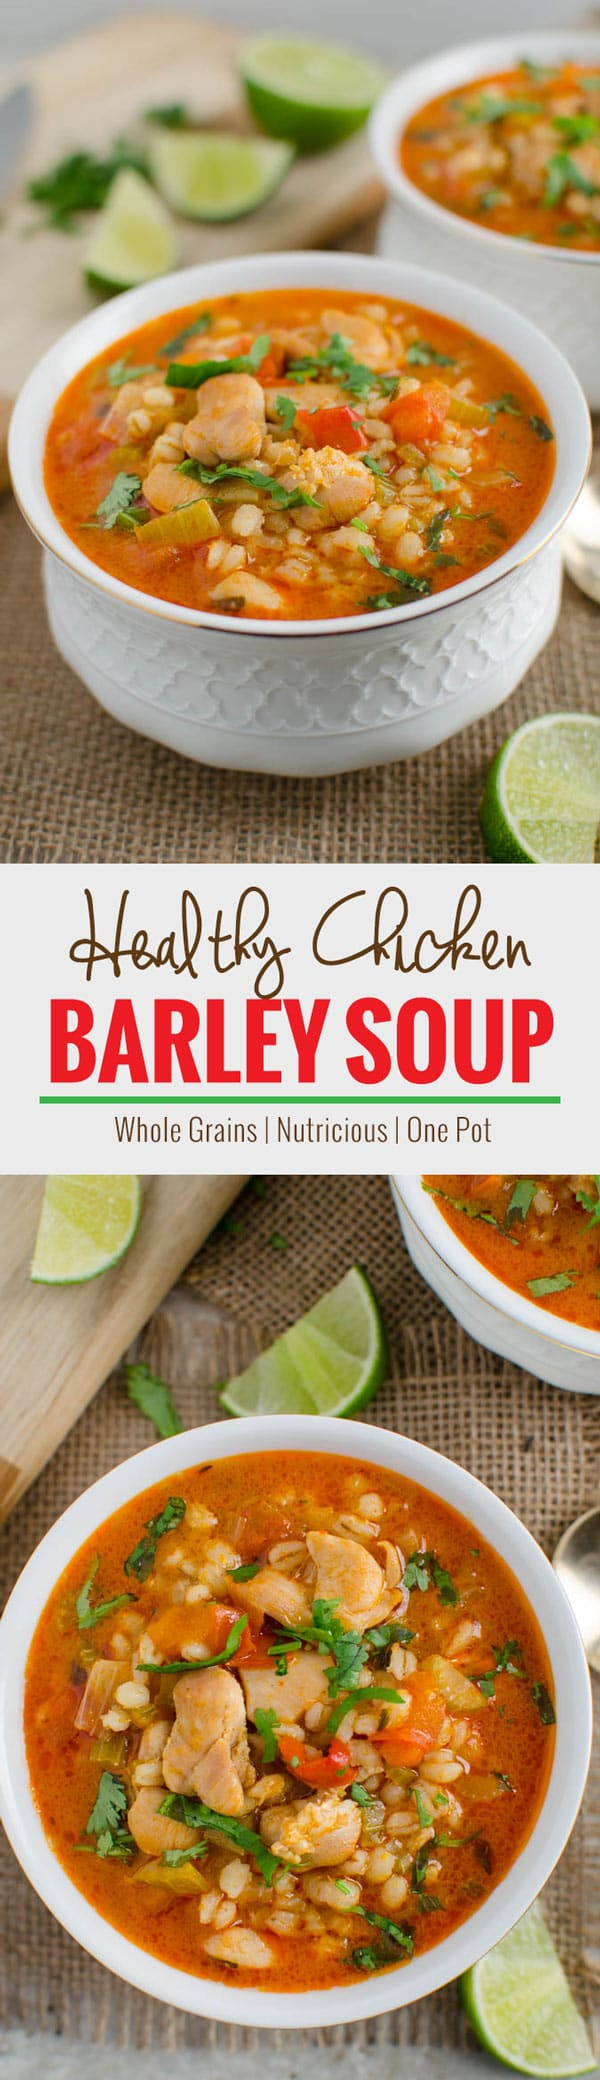 Easy chicken and barley soup recipe -- One pot, healthy, wholesome & nutrient packed soup perfect for lunch or dinner. | watchwhatueat.com